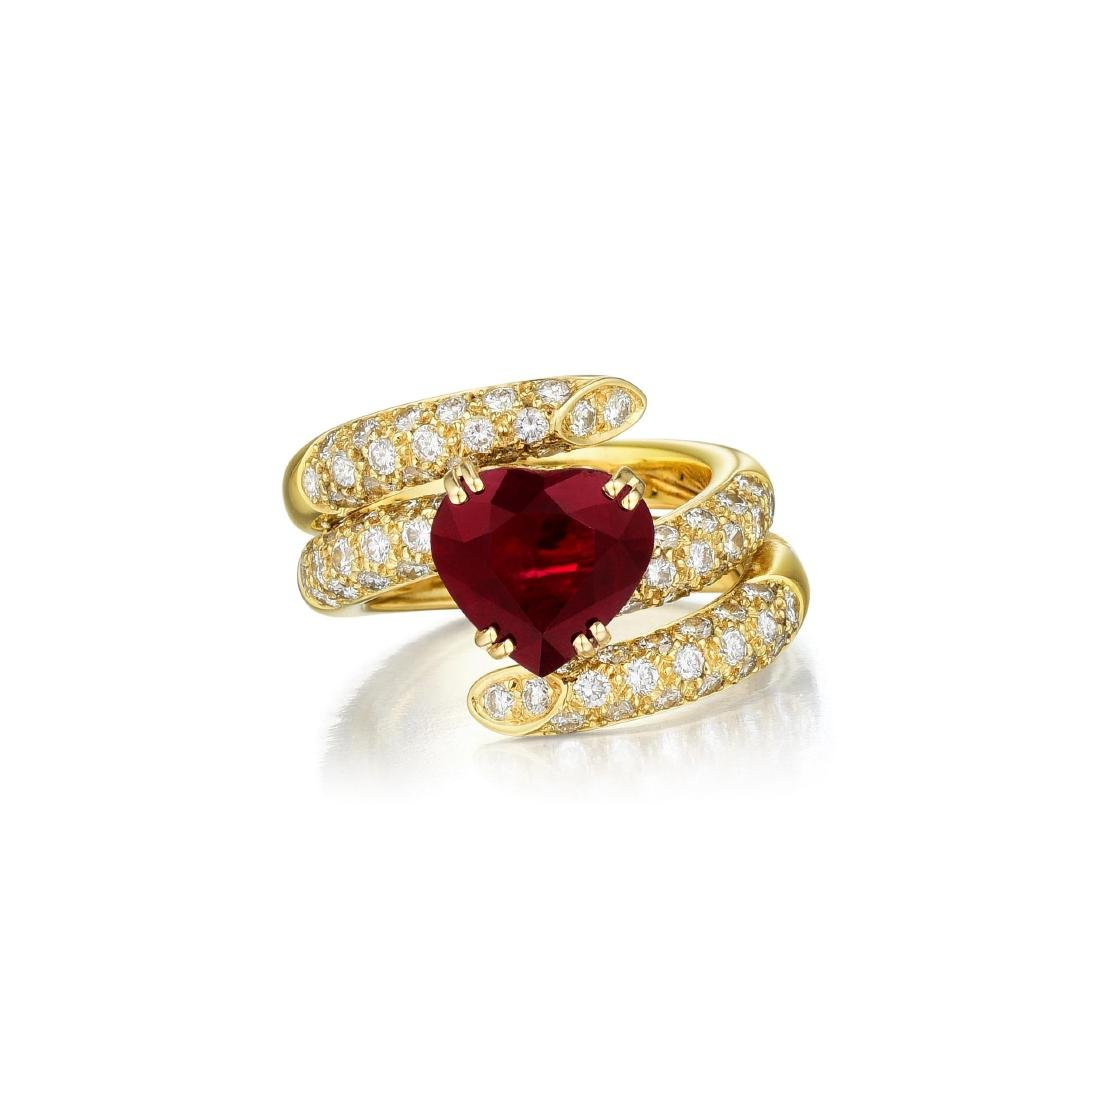 A Burmese Ruby and Diamond Ring, French